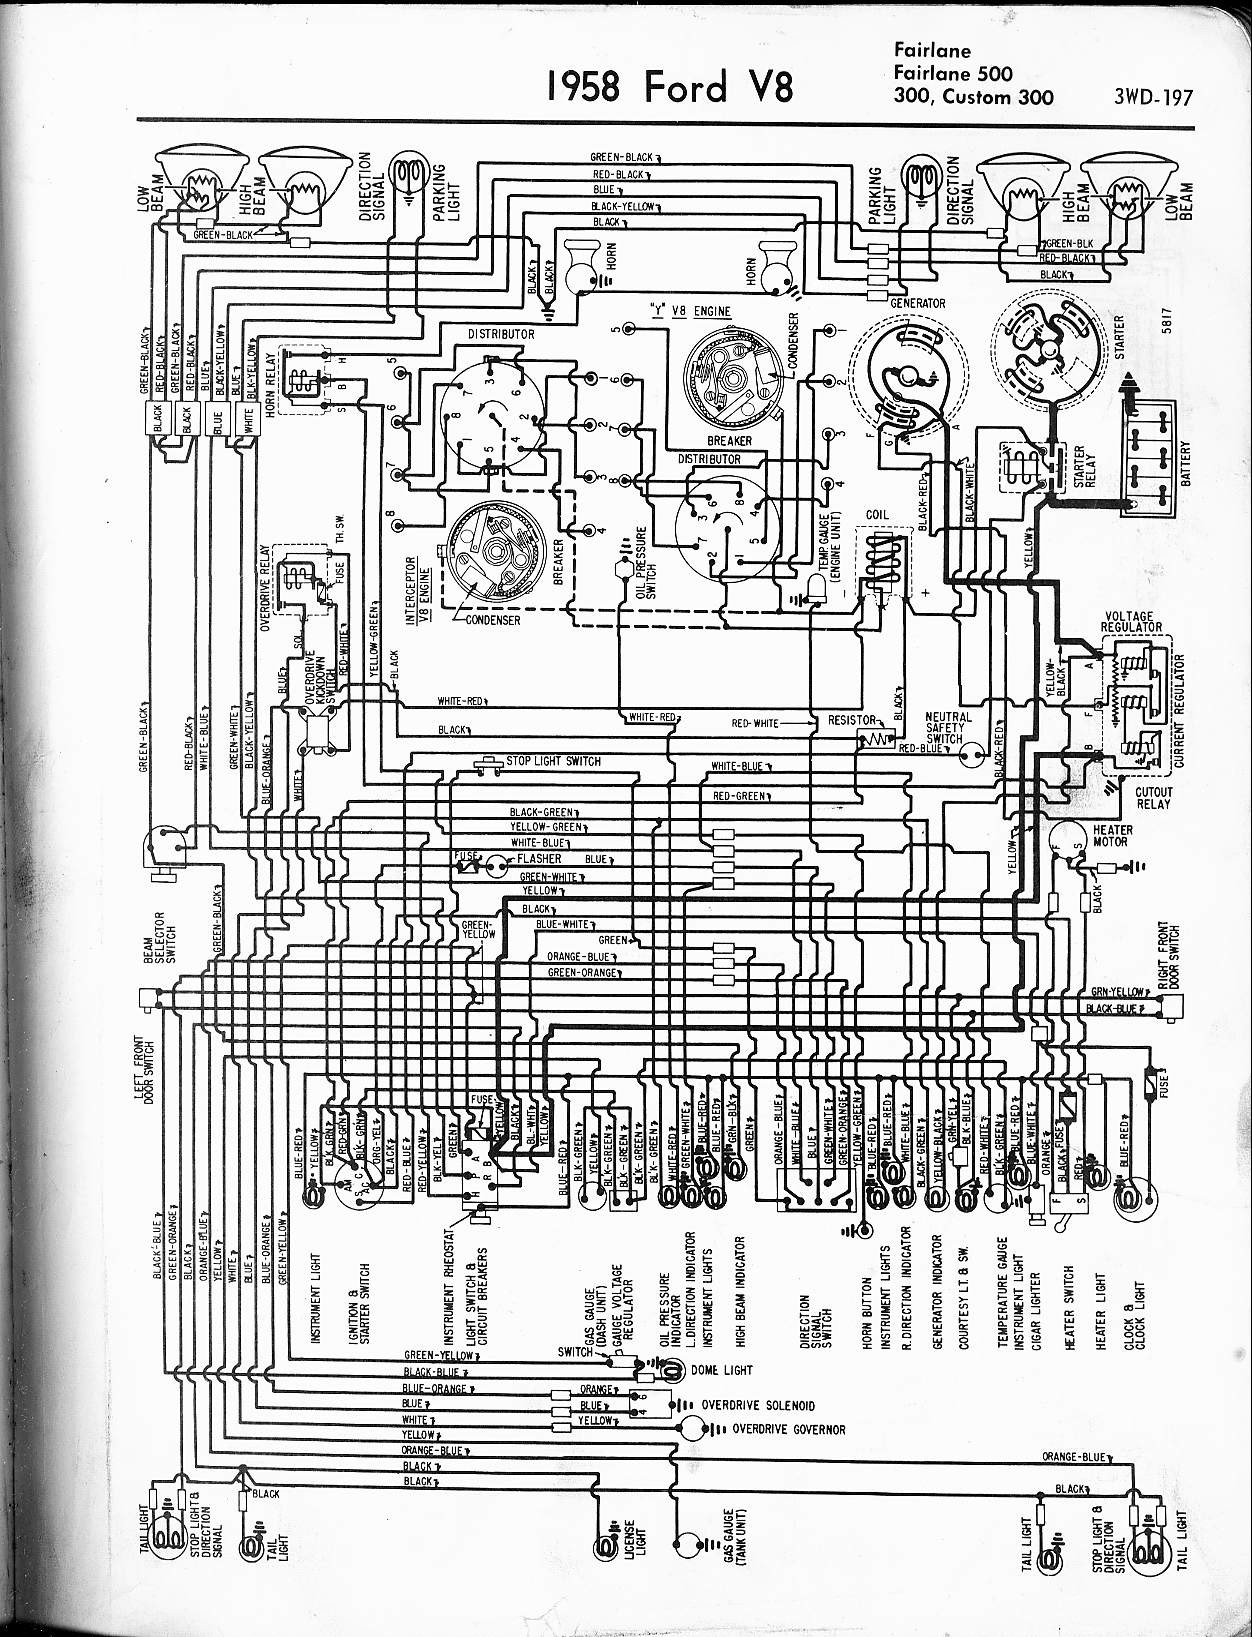 1969 Ford Torino Wiring Harness Vehicle Diagrams 1974 Diagram Truck Free F150 Further 1970 Rh Detoxicrecenze 1956 Fairlane Wiringdiagram 197